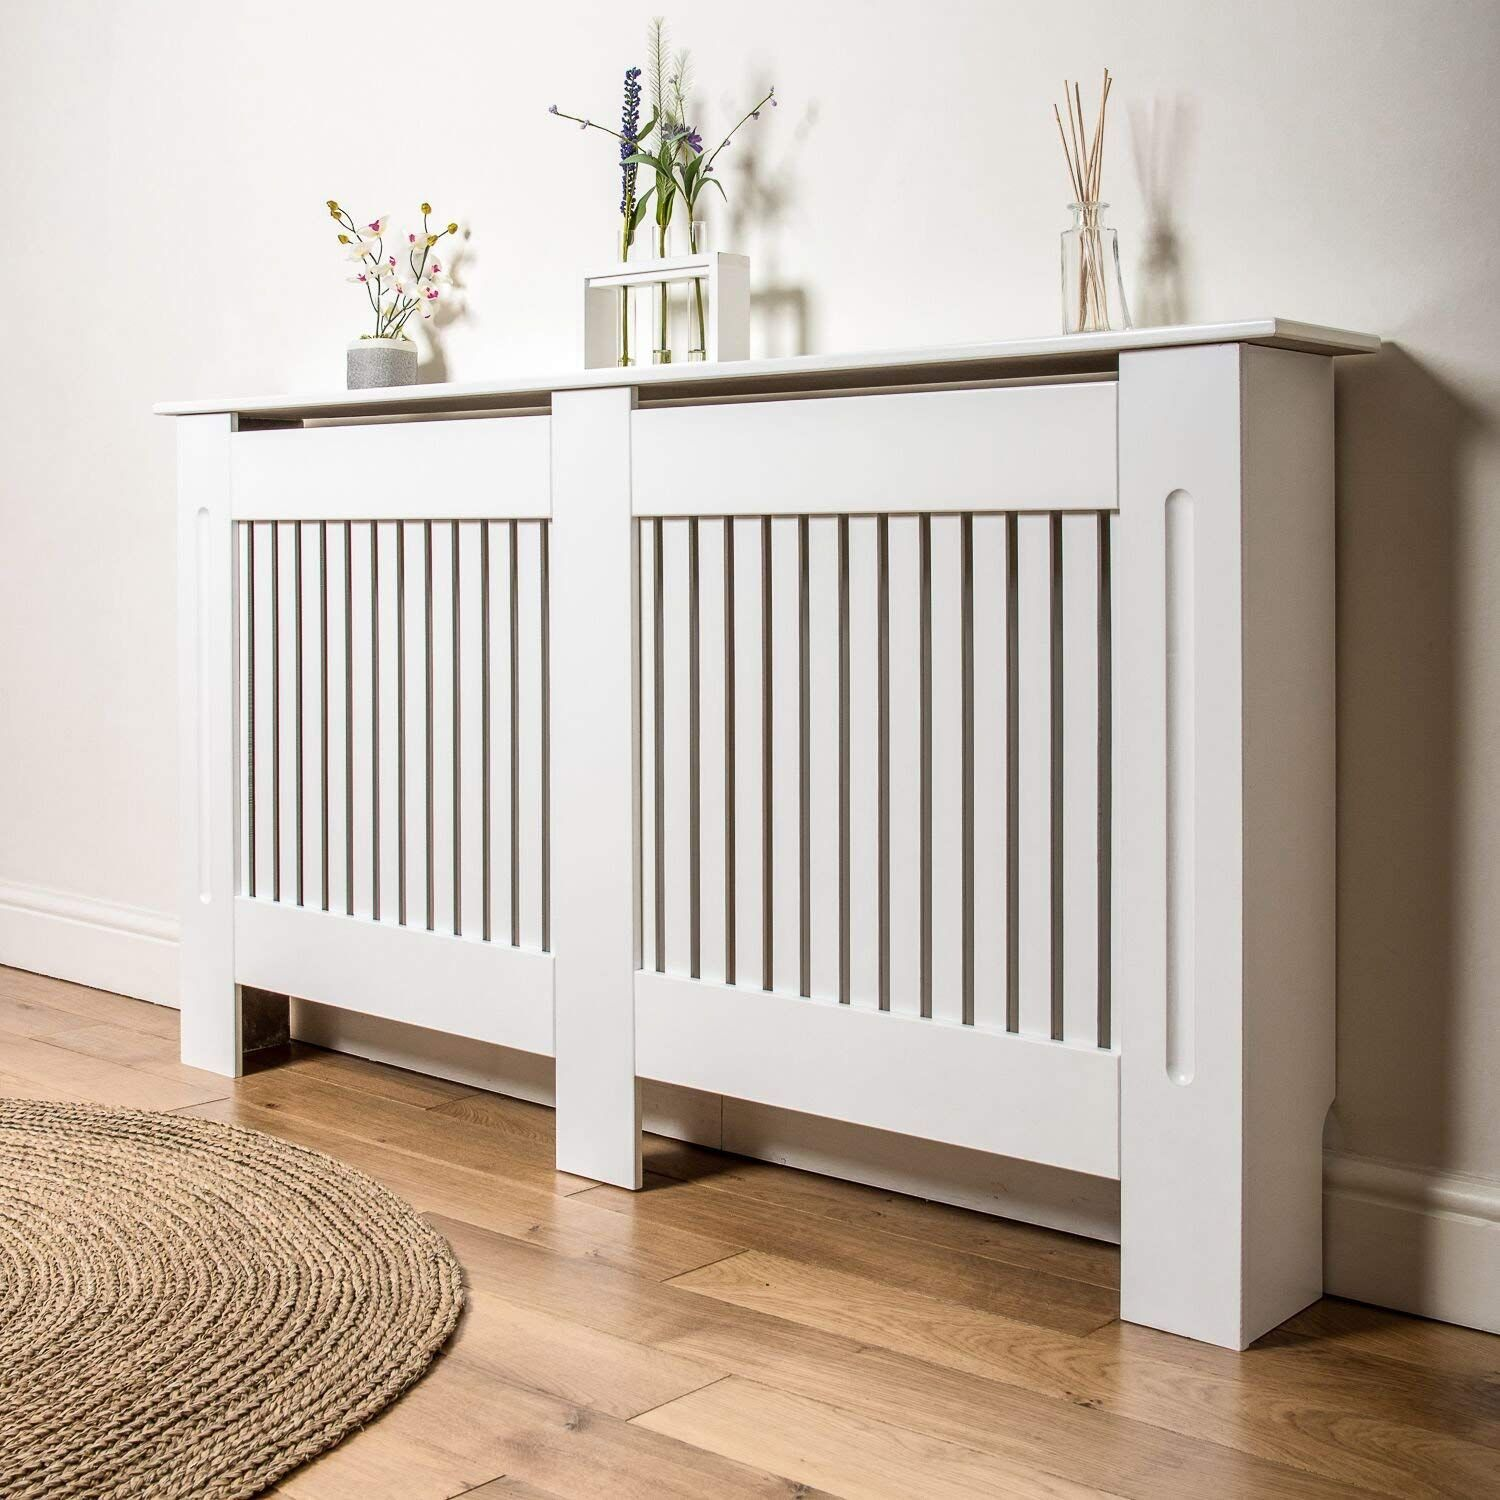 Home treats radiator cover small large adjustable small